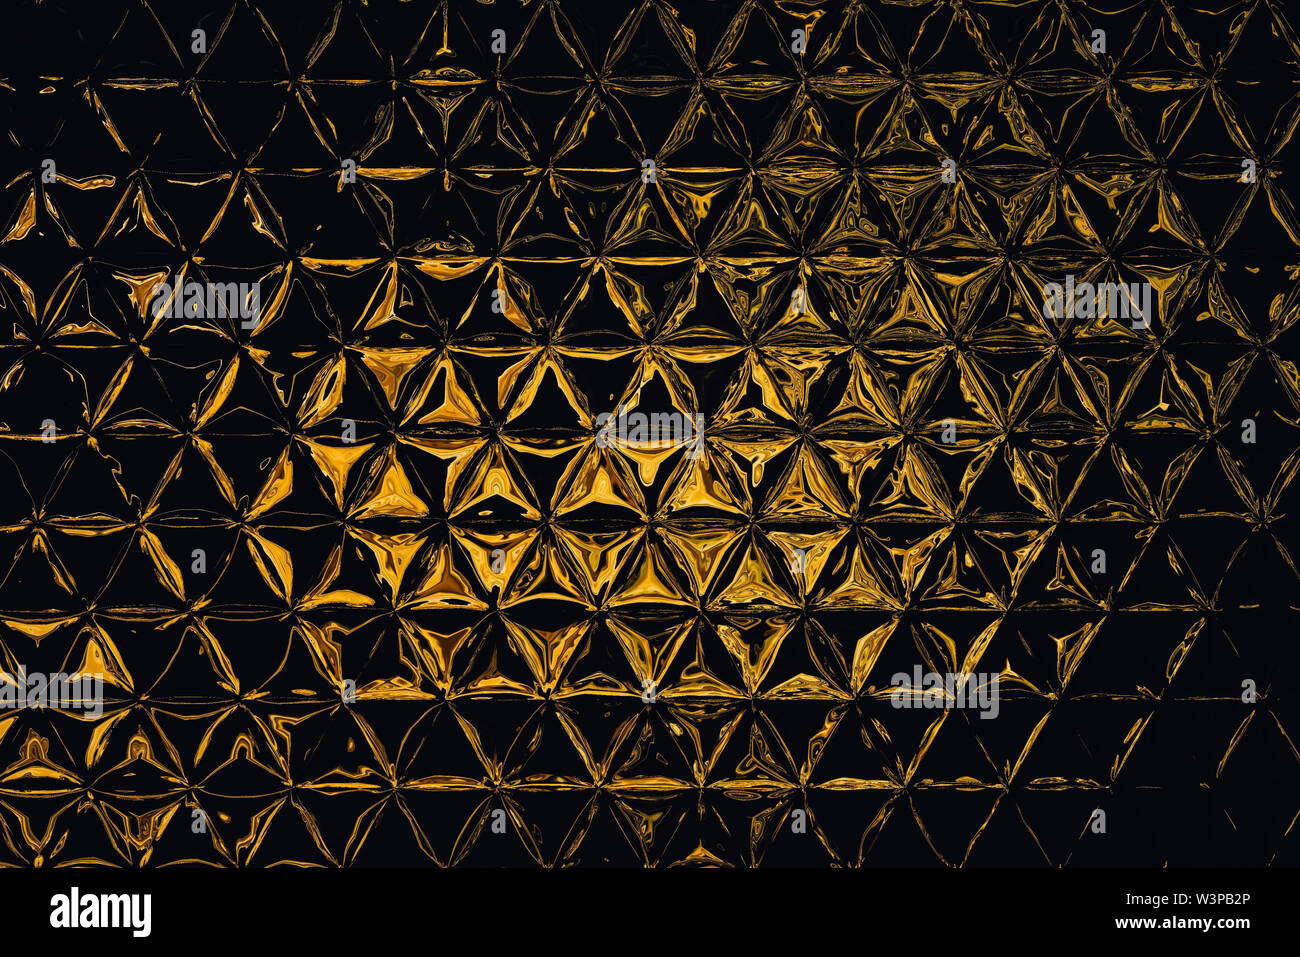 Liquid gold imitation design pattern. Real golden color abstract fractal art. Creative background in asian or arabic style. Rich luxury wallpaper. Wal - Stock Image